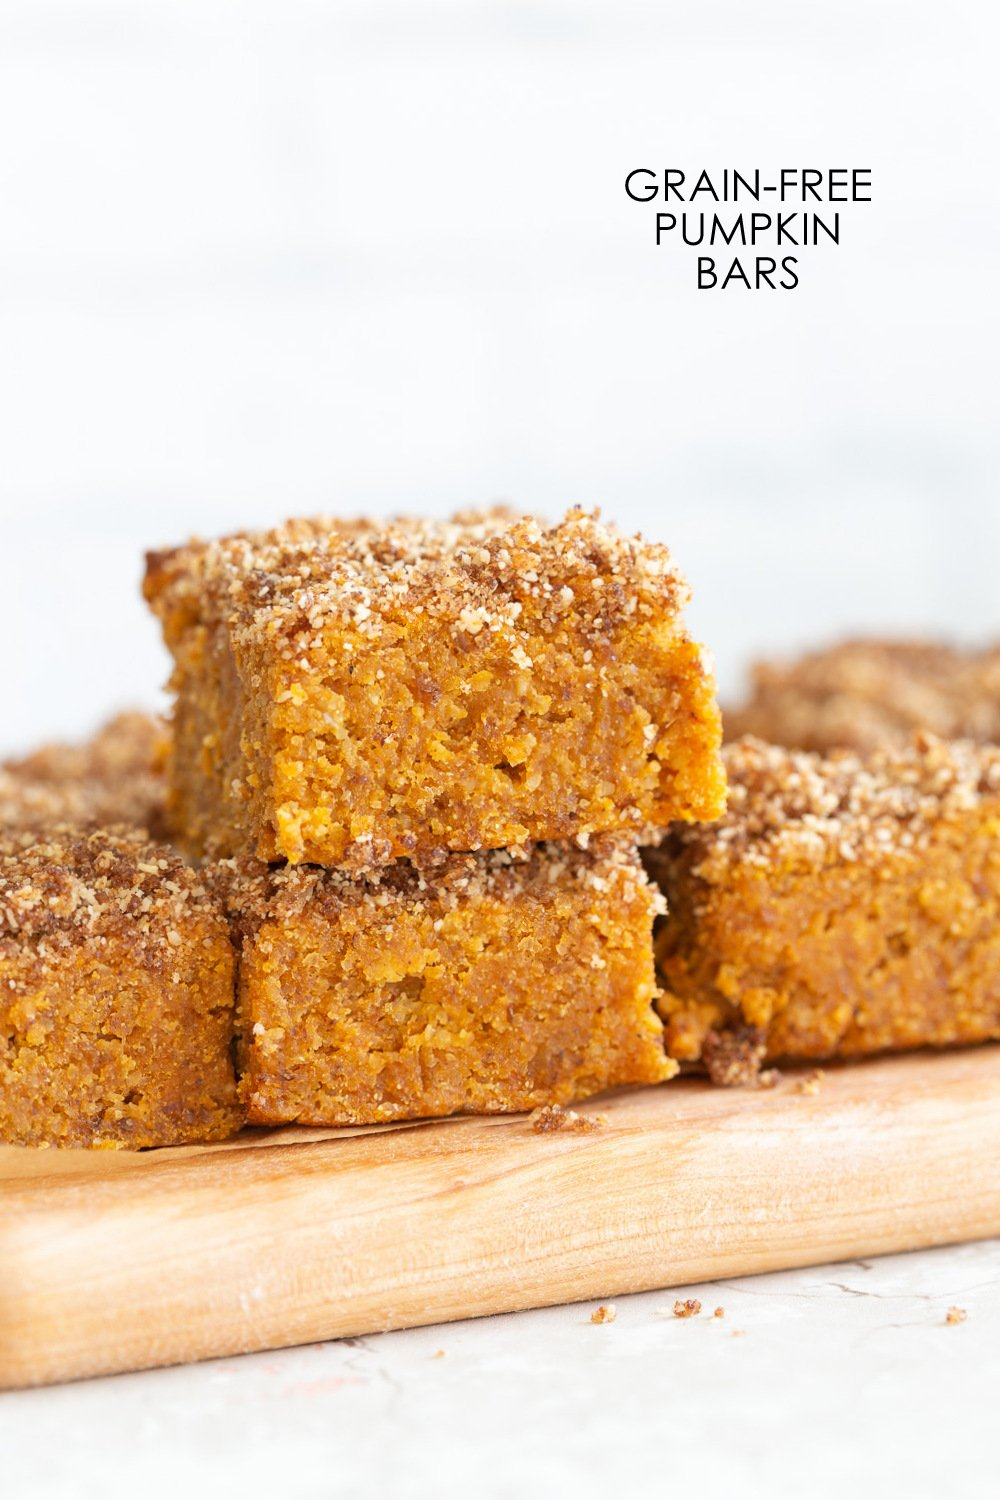 These Vegan Gluten-free Pumpkin Bars are grain-free, fudgy and so Delicious! Cinnamon streusel on top makes them decadent and festive. #oilfree #Vegan #Glutenfree #Soyfree #Paleo #Grainfree #Recipe #VeganRicha